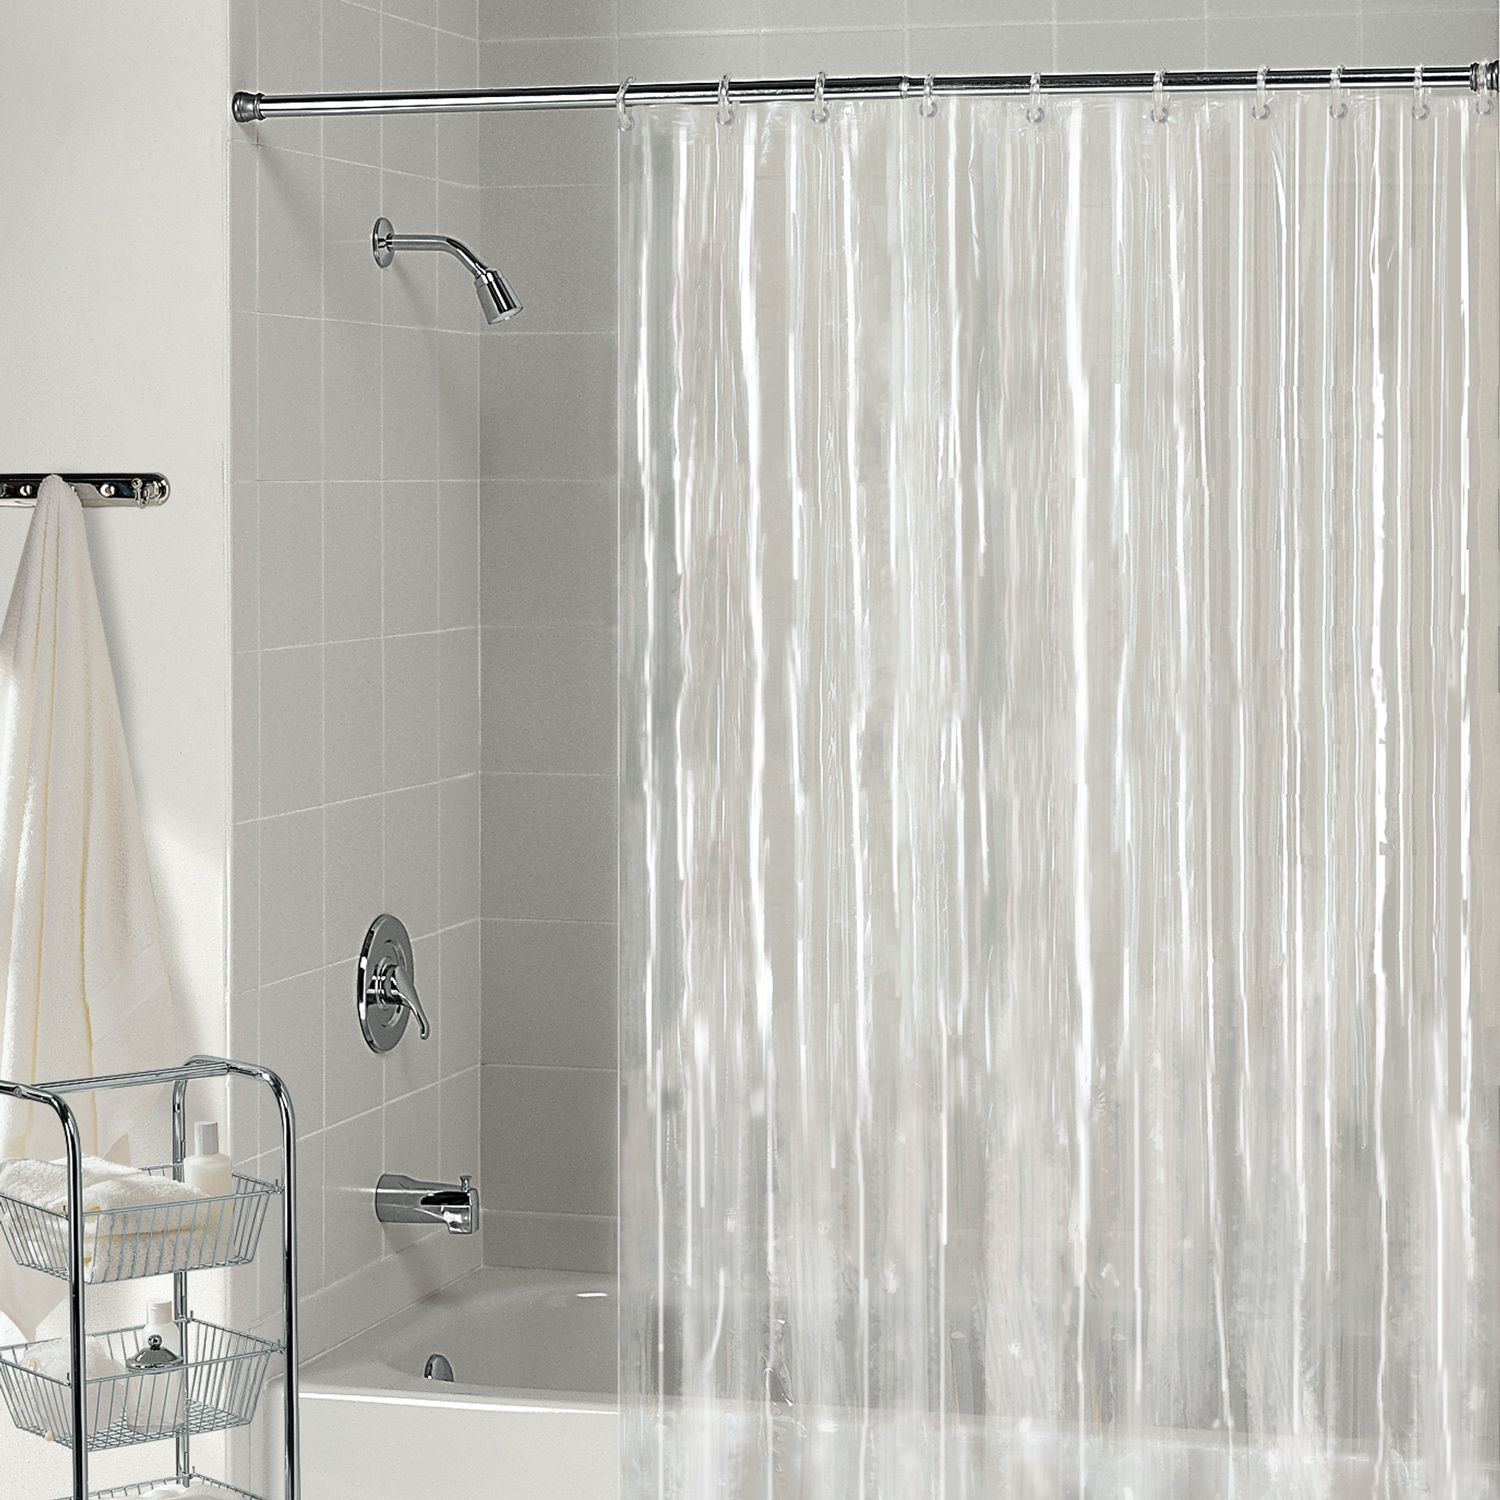 Bathrooms With Clear Shower Curtains Shower Curtains Design pertaining to size 1500 X 1500